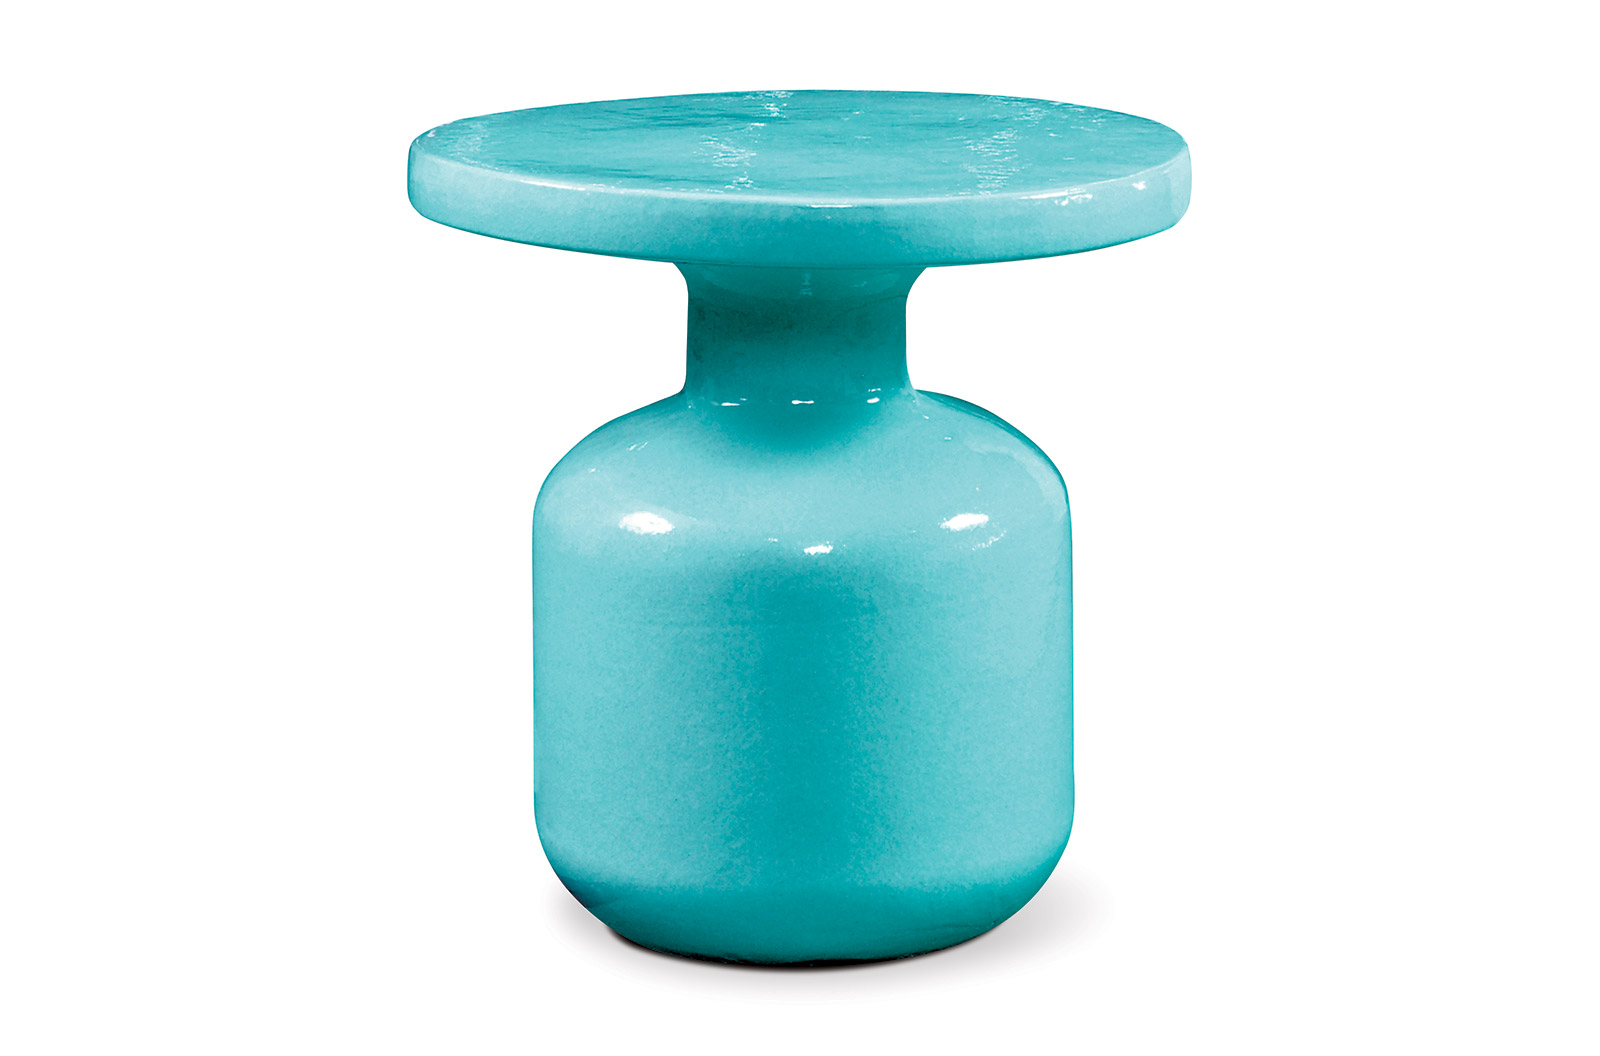 ceramic bottle accent table cer web blue wood pedestal round furniture legs green tiffany lamp plastic side crate and barrel teton brass sofa curved console outdoor umbrella stand